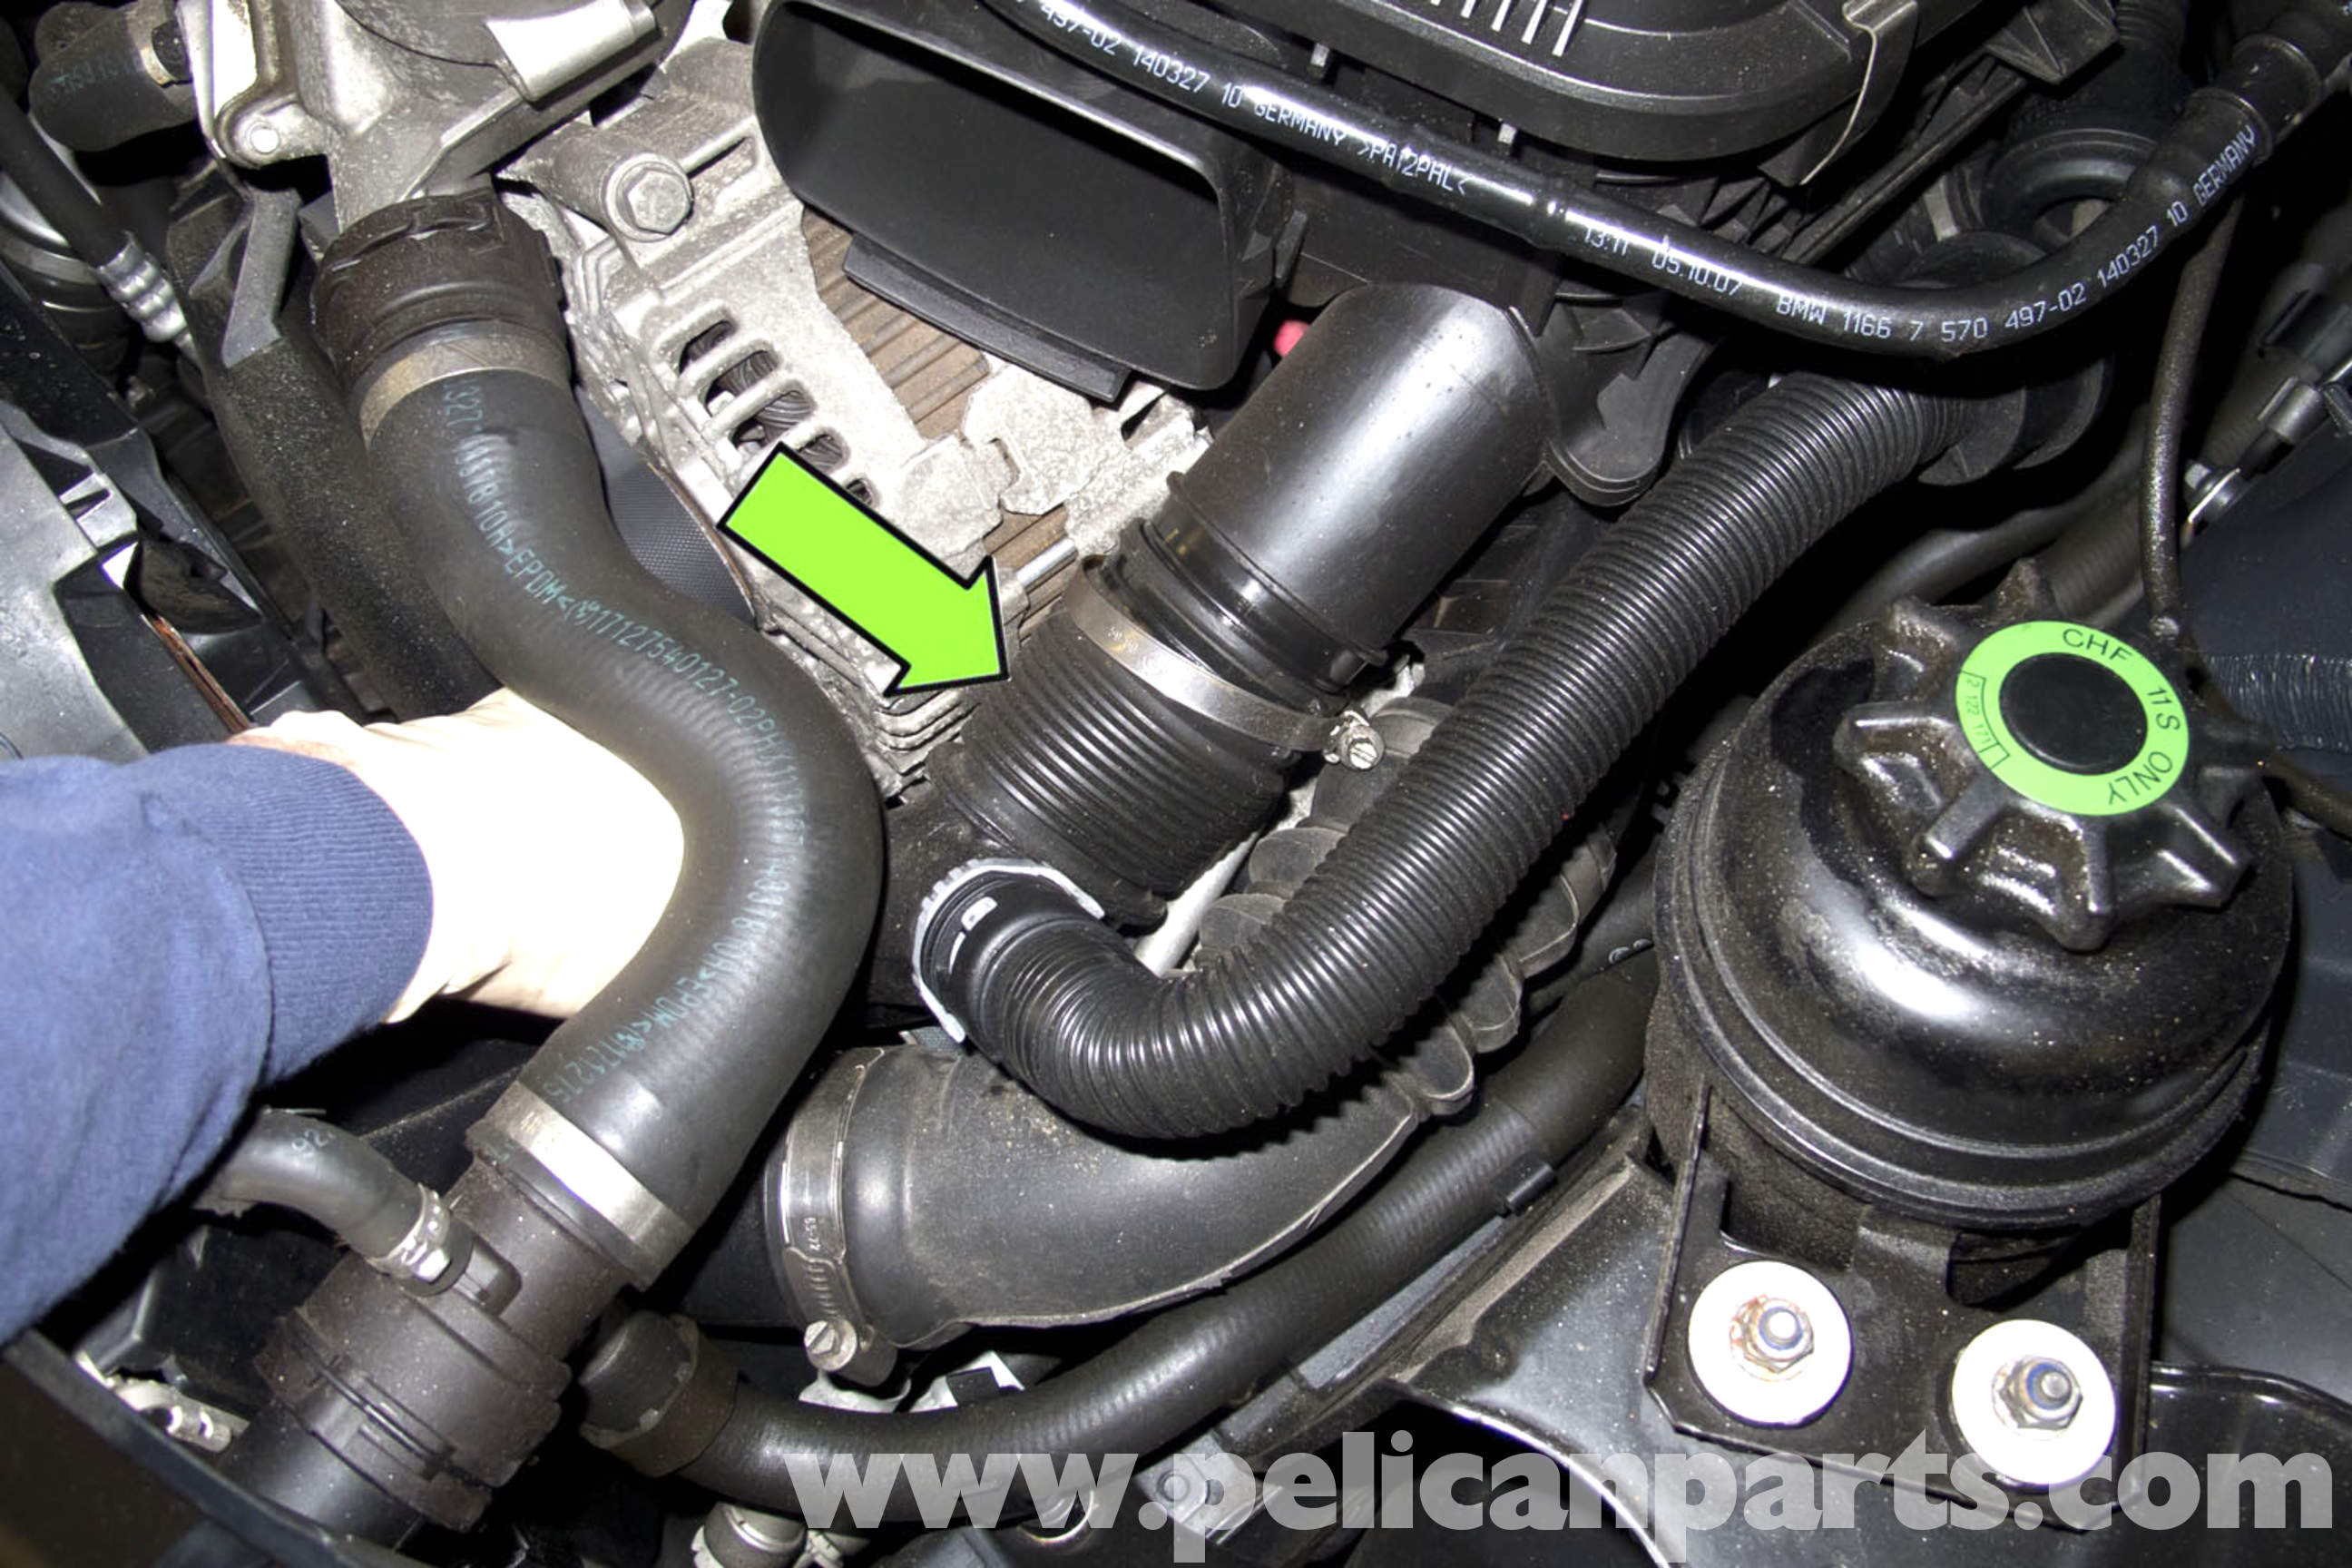 pic18 bmw e90 knock sensor replacement e91, e92, e93 pelican parts BMW E90 Music-Diagram at creativeand.co